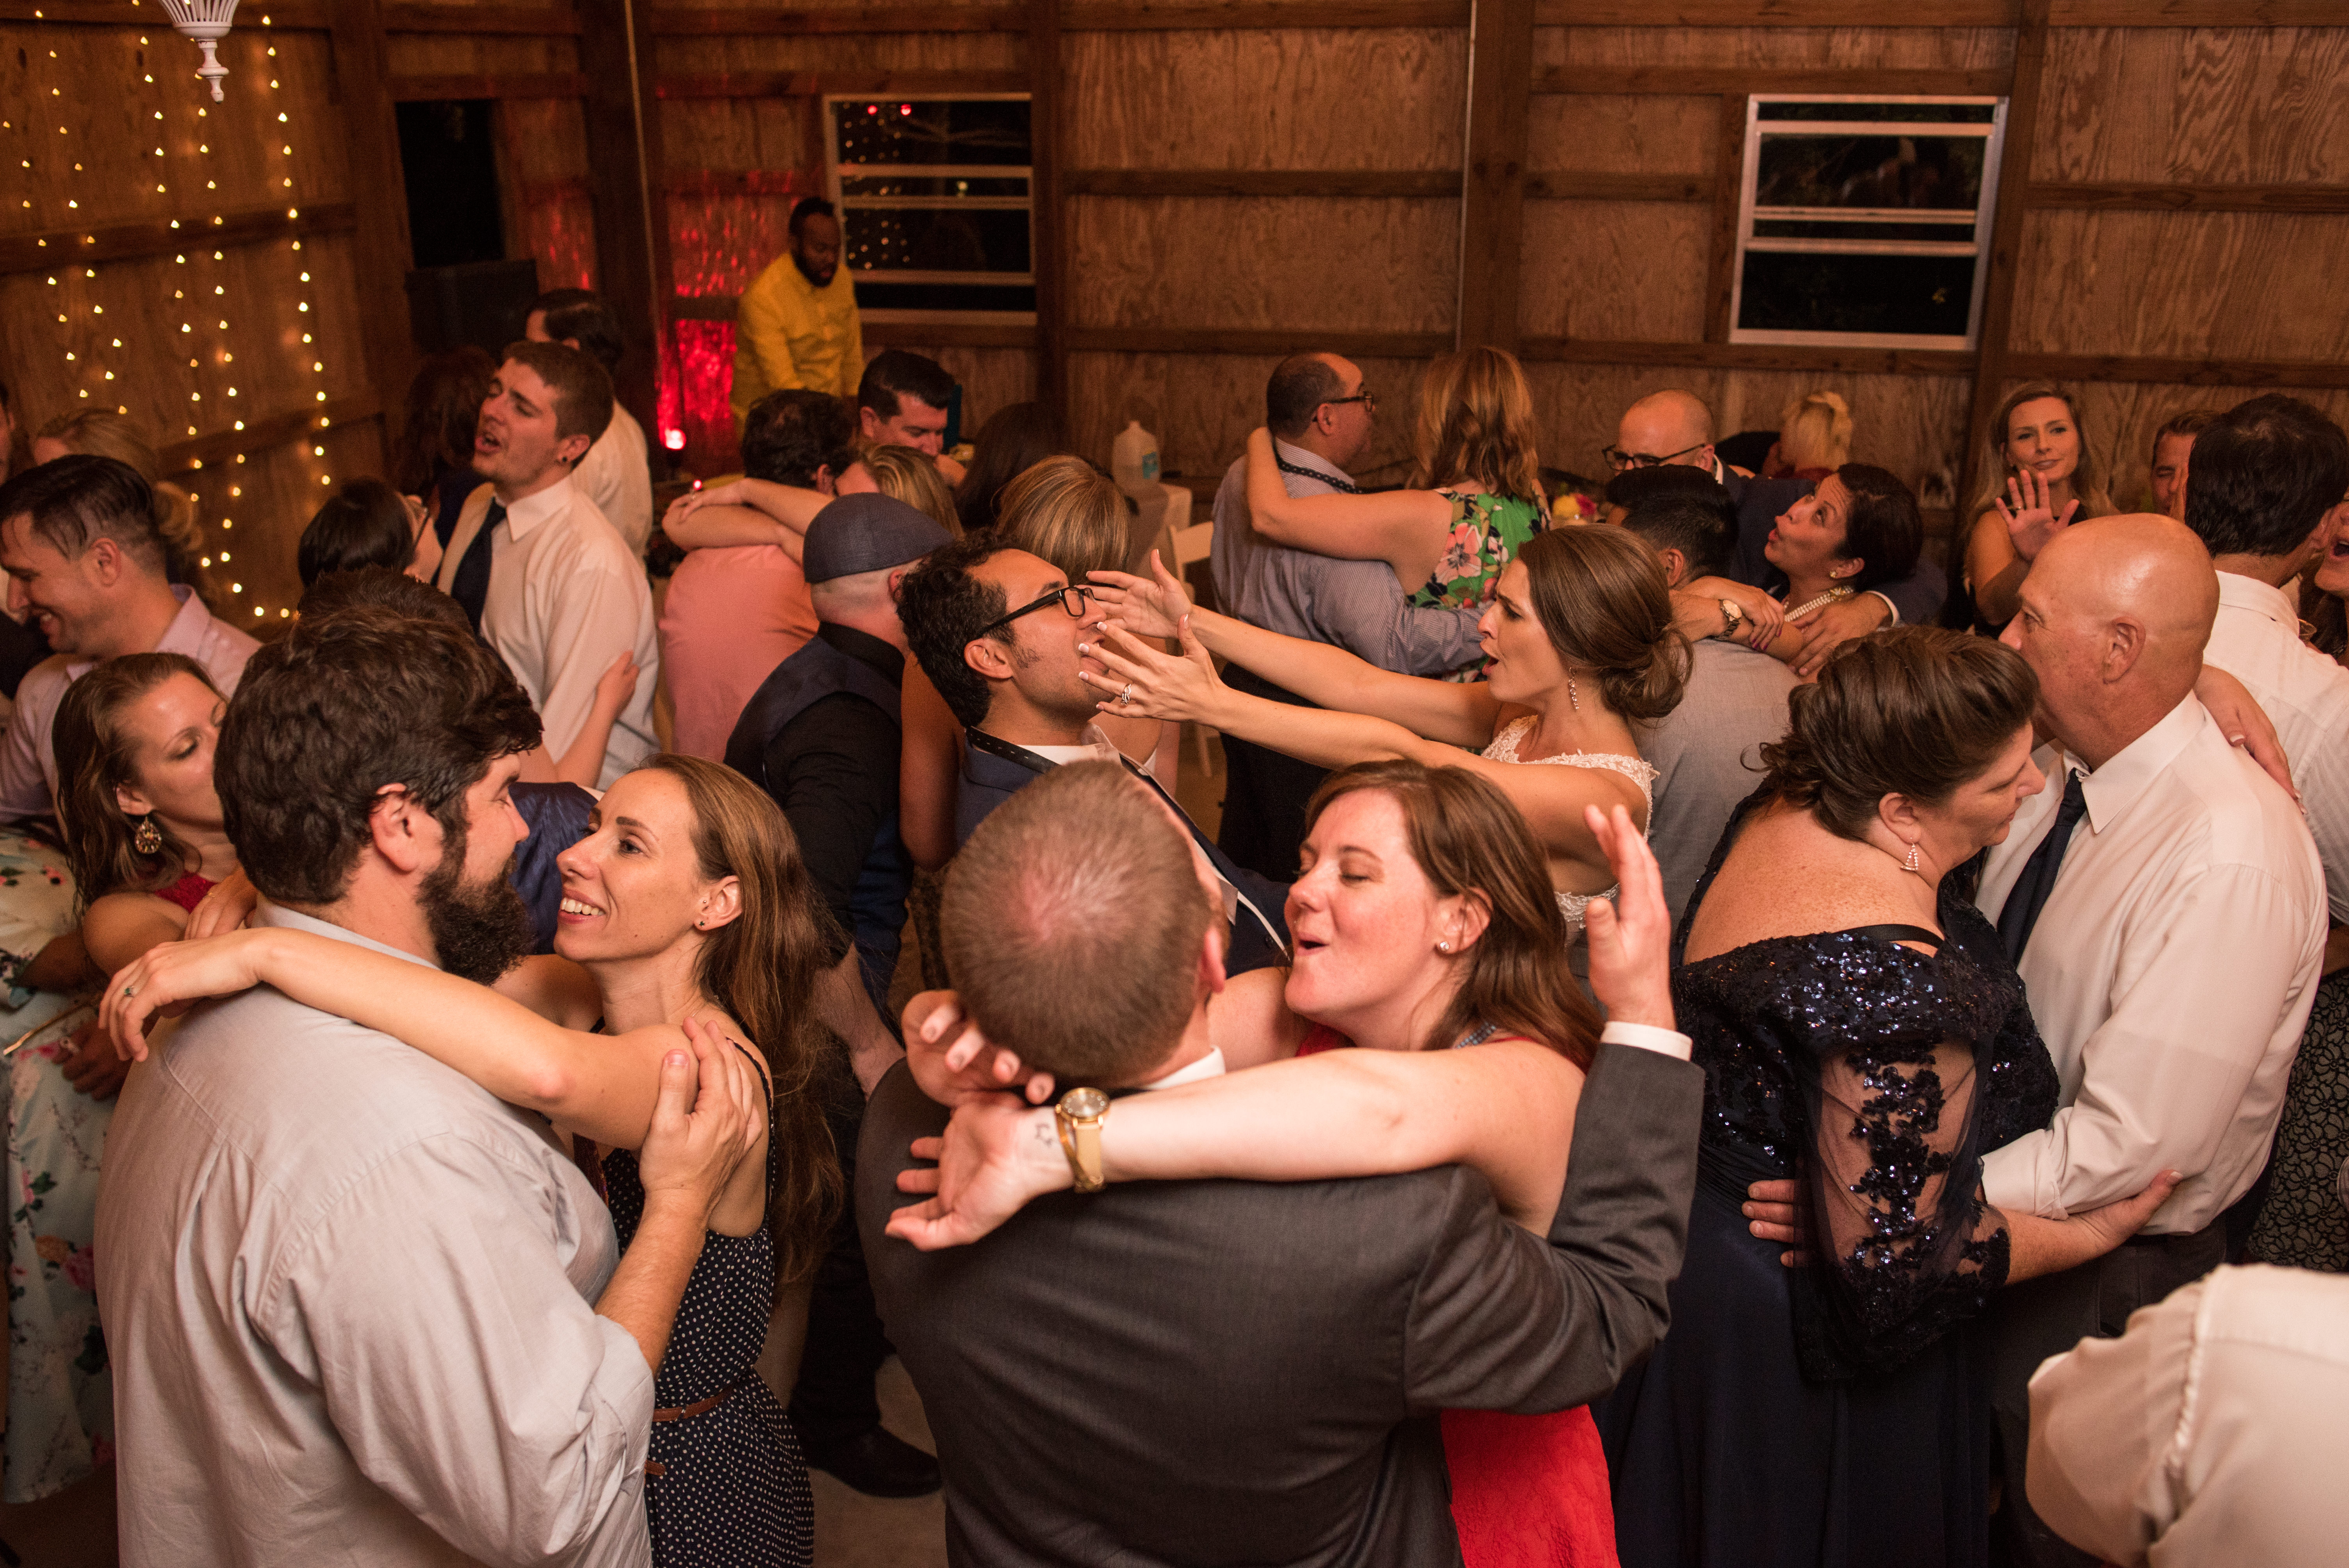 Dancing at the Williford Wedding